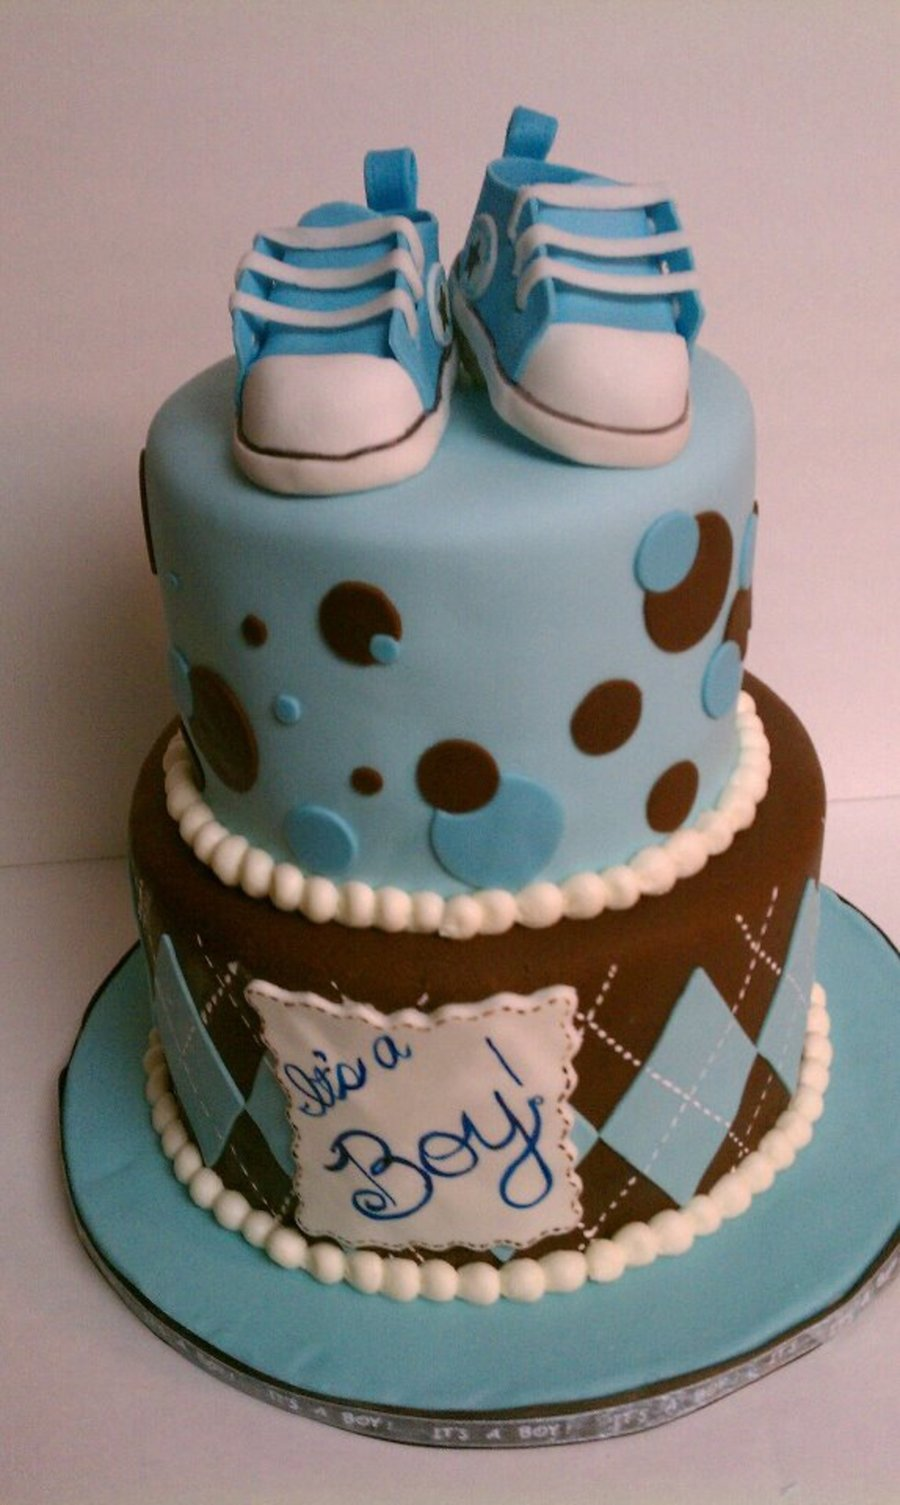 Preppy Baby Shower on Cake Central